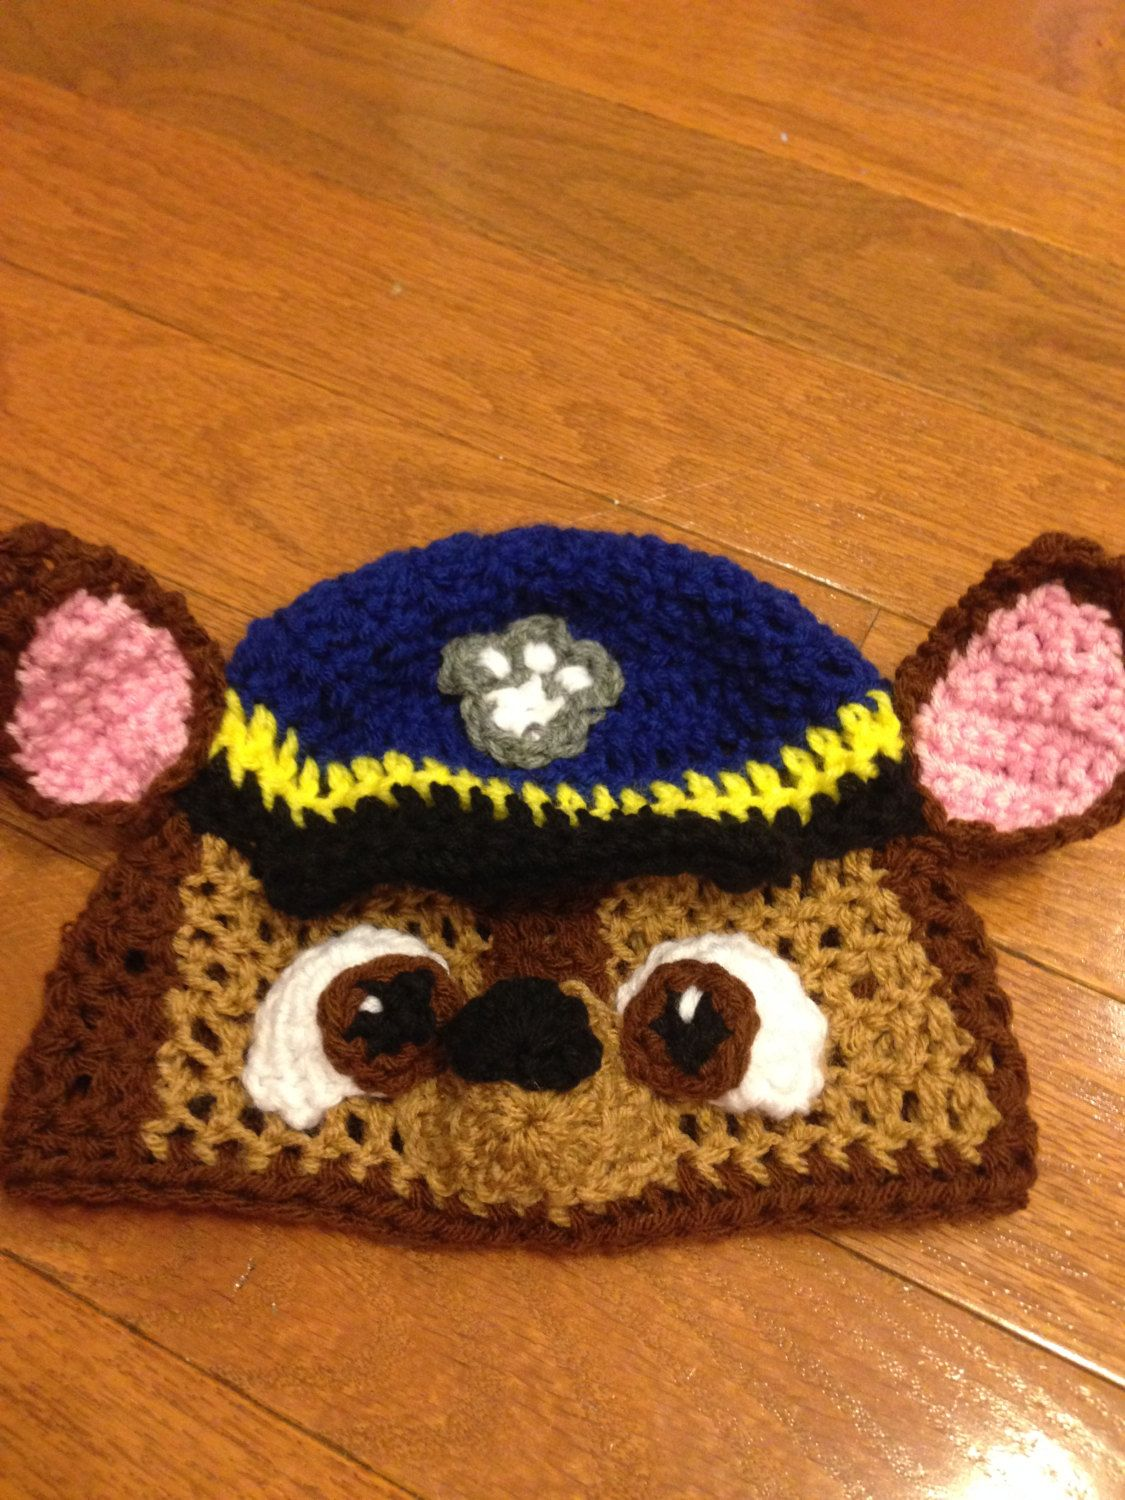 Crochet Patterns Paw Patrol : about Paw Patrol Hat on Pinterest Crochet character hats, Paw patrol ...